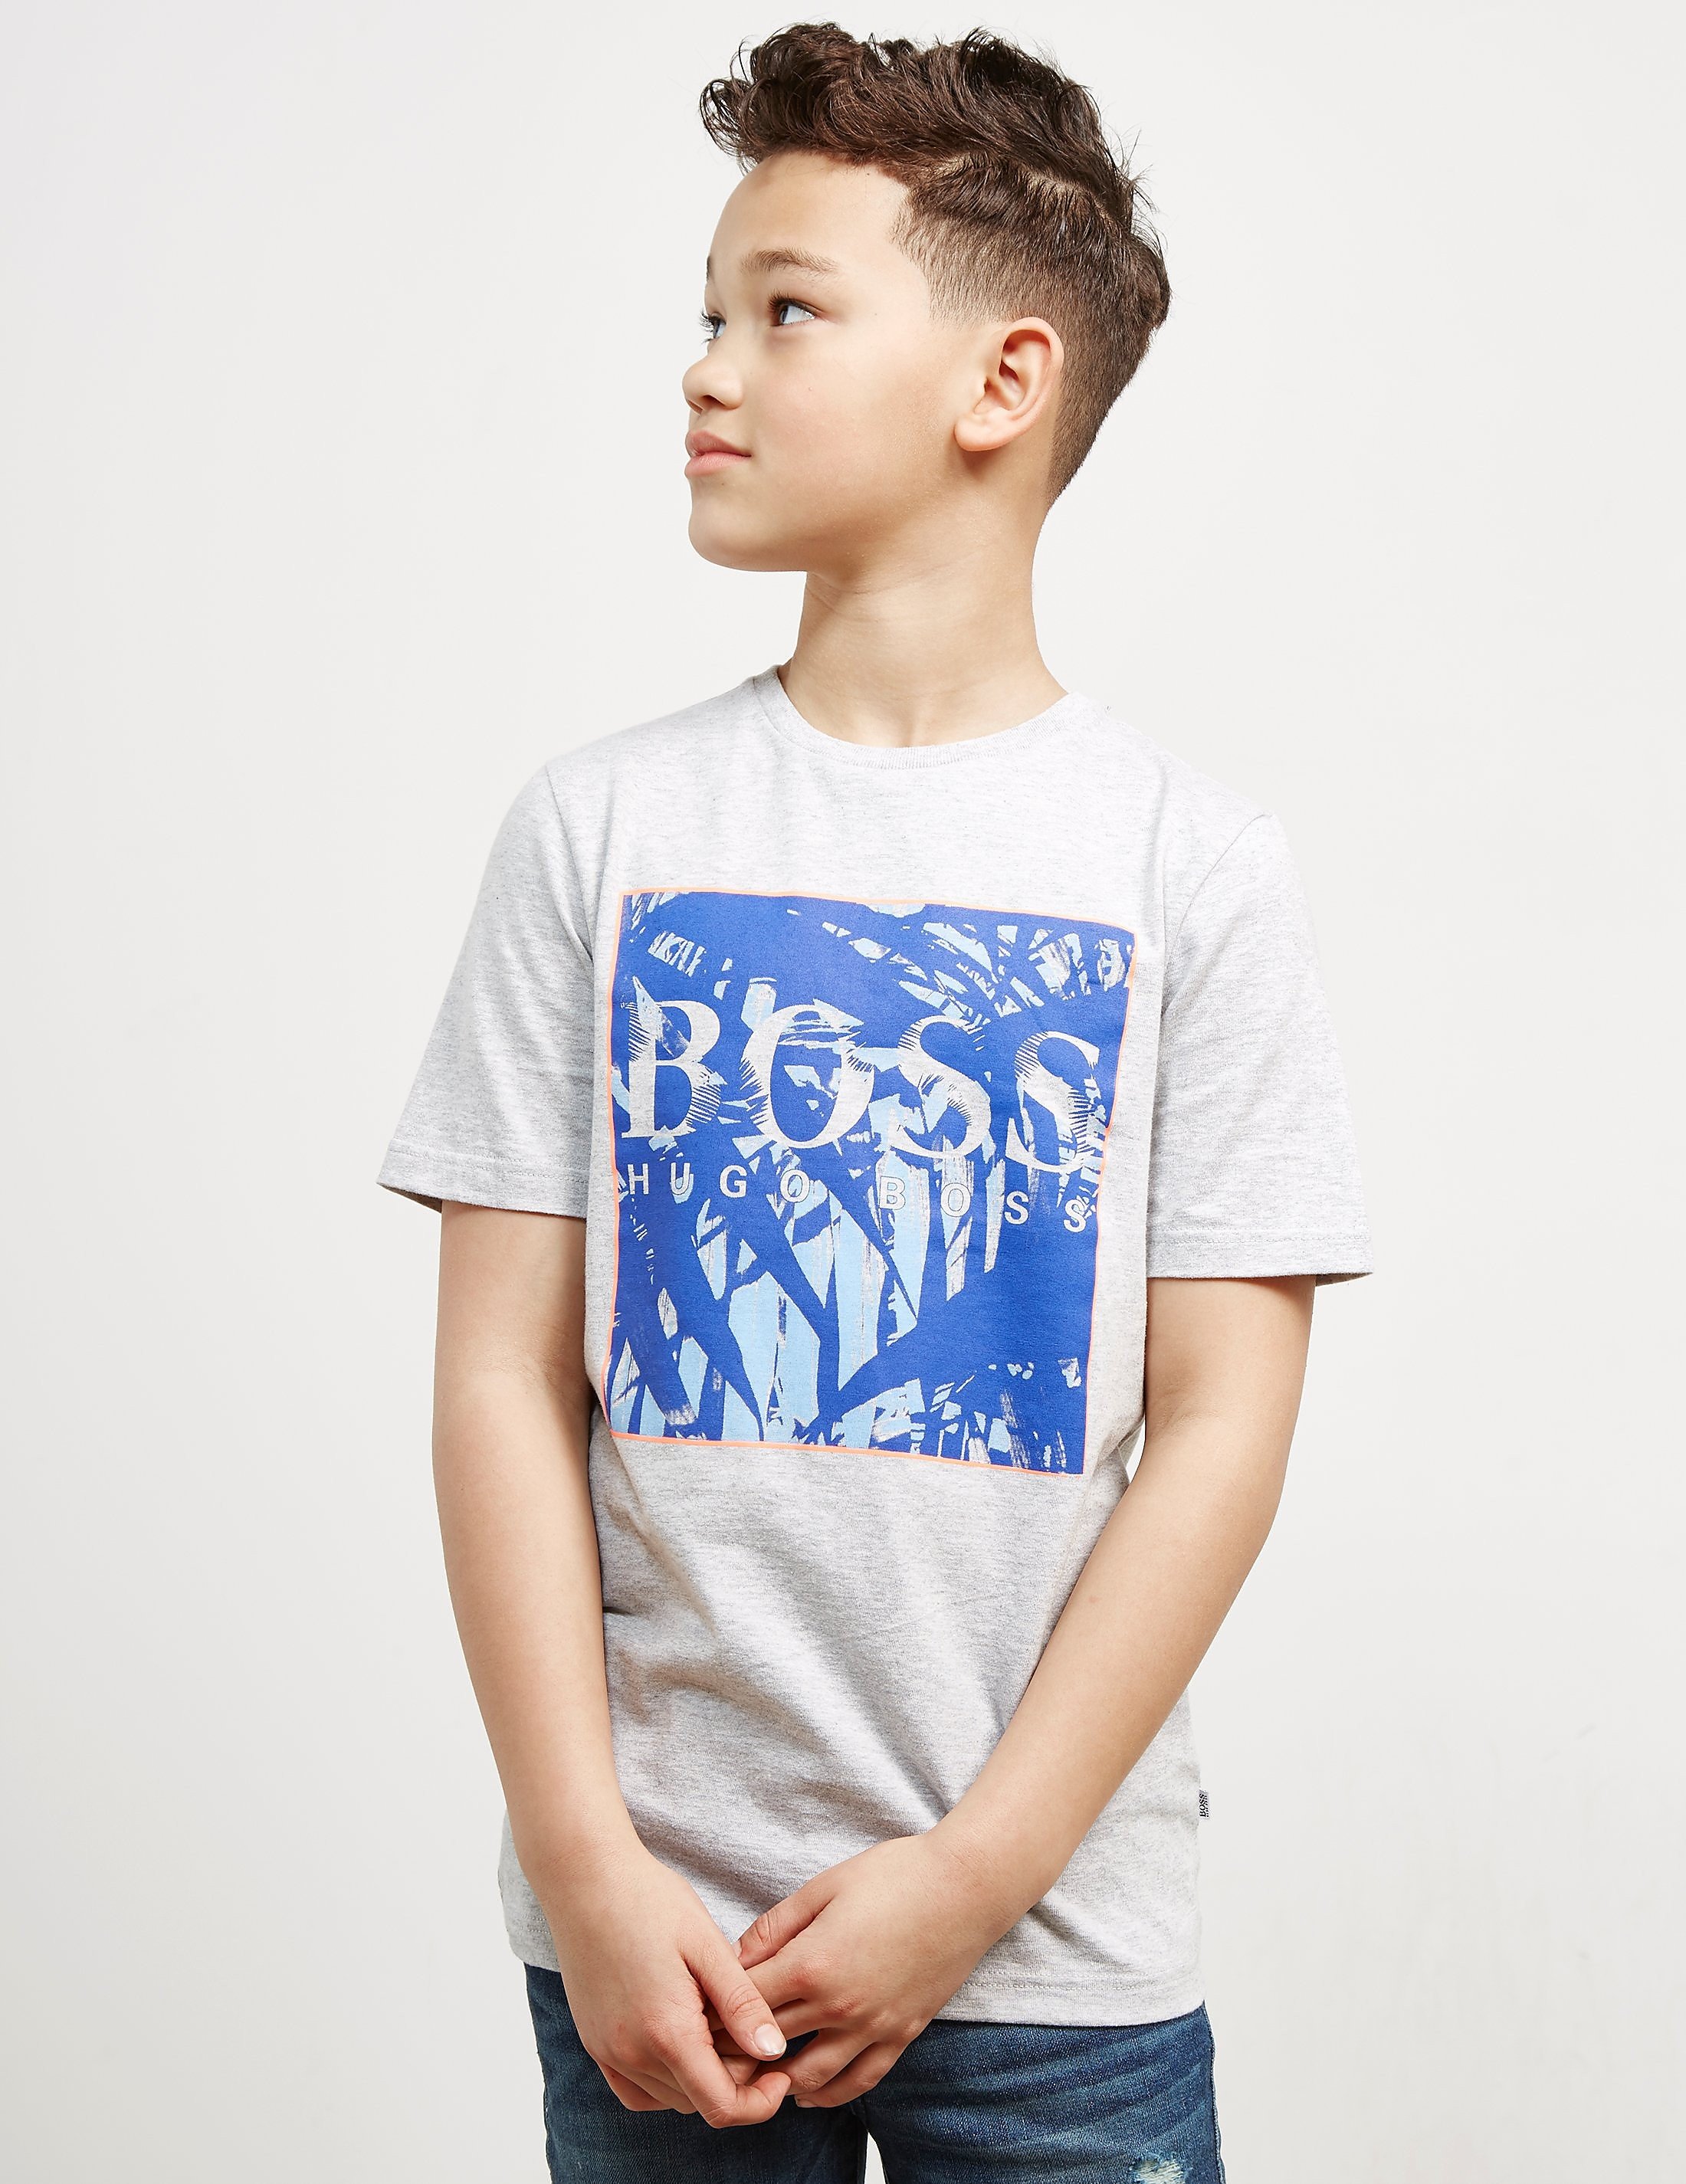 BOSS Palm Box Short Sleeve T-Shirt